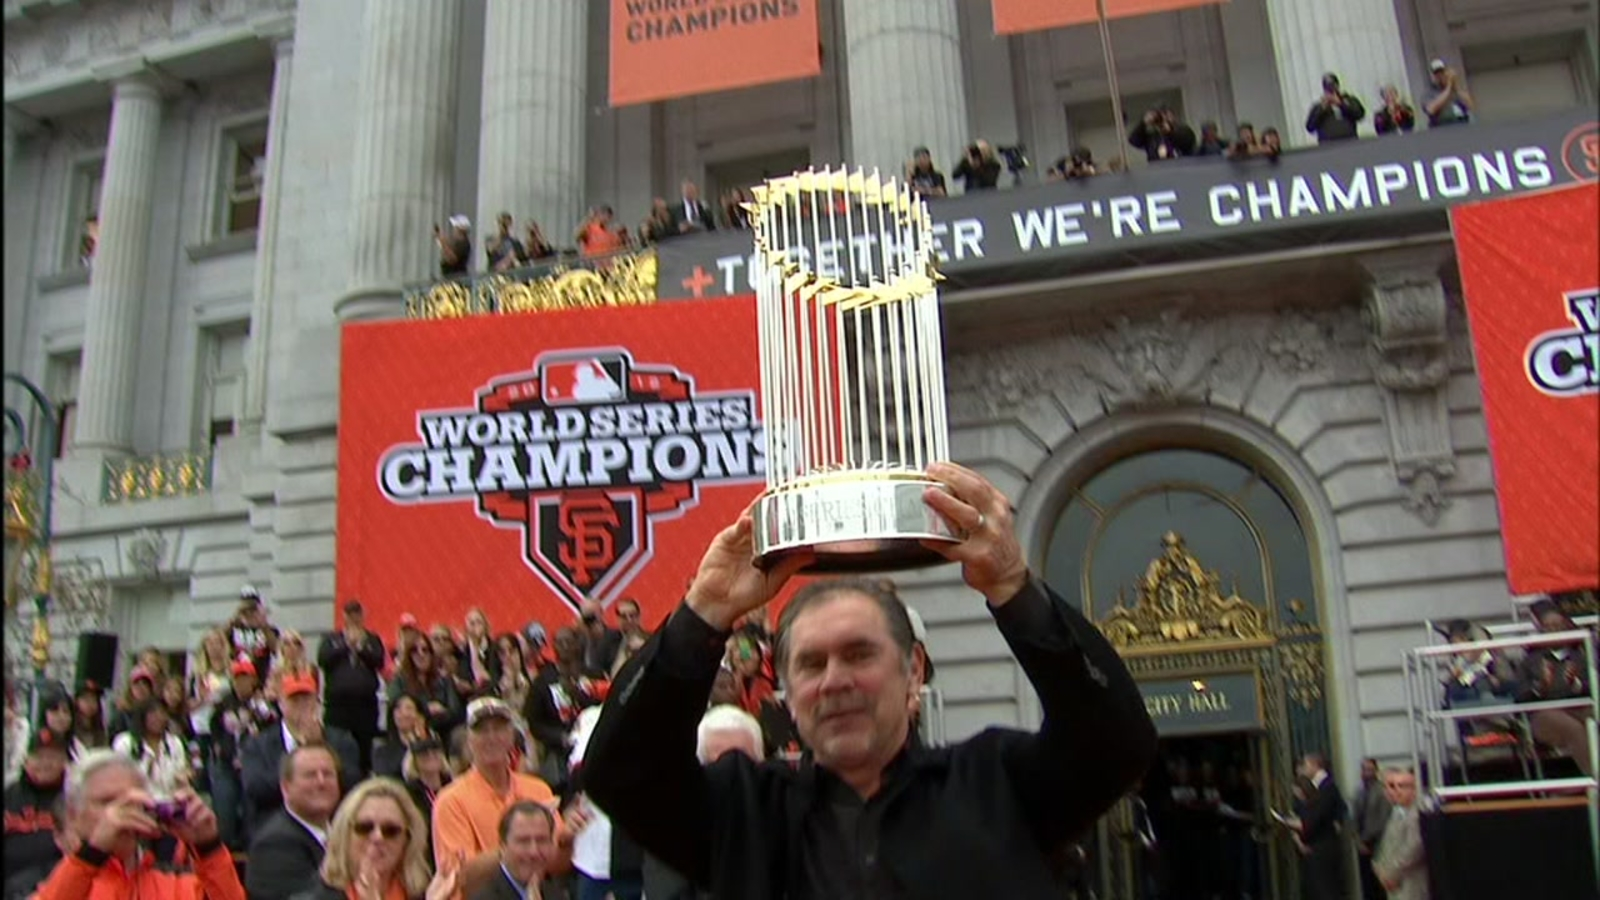 Championships and connection define Bochy's run in San Francisco